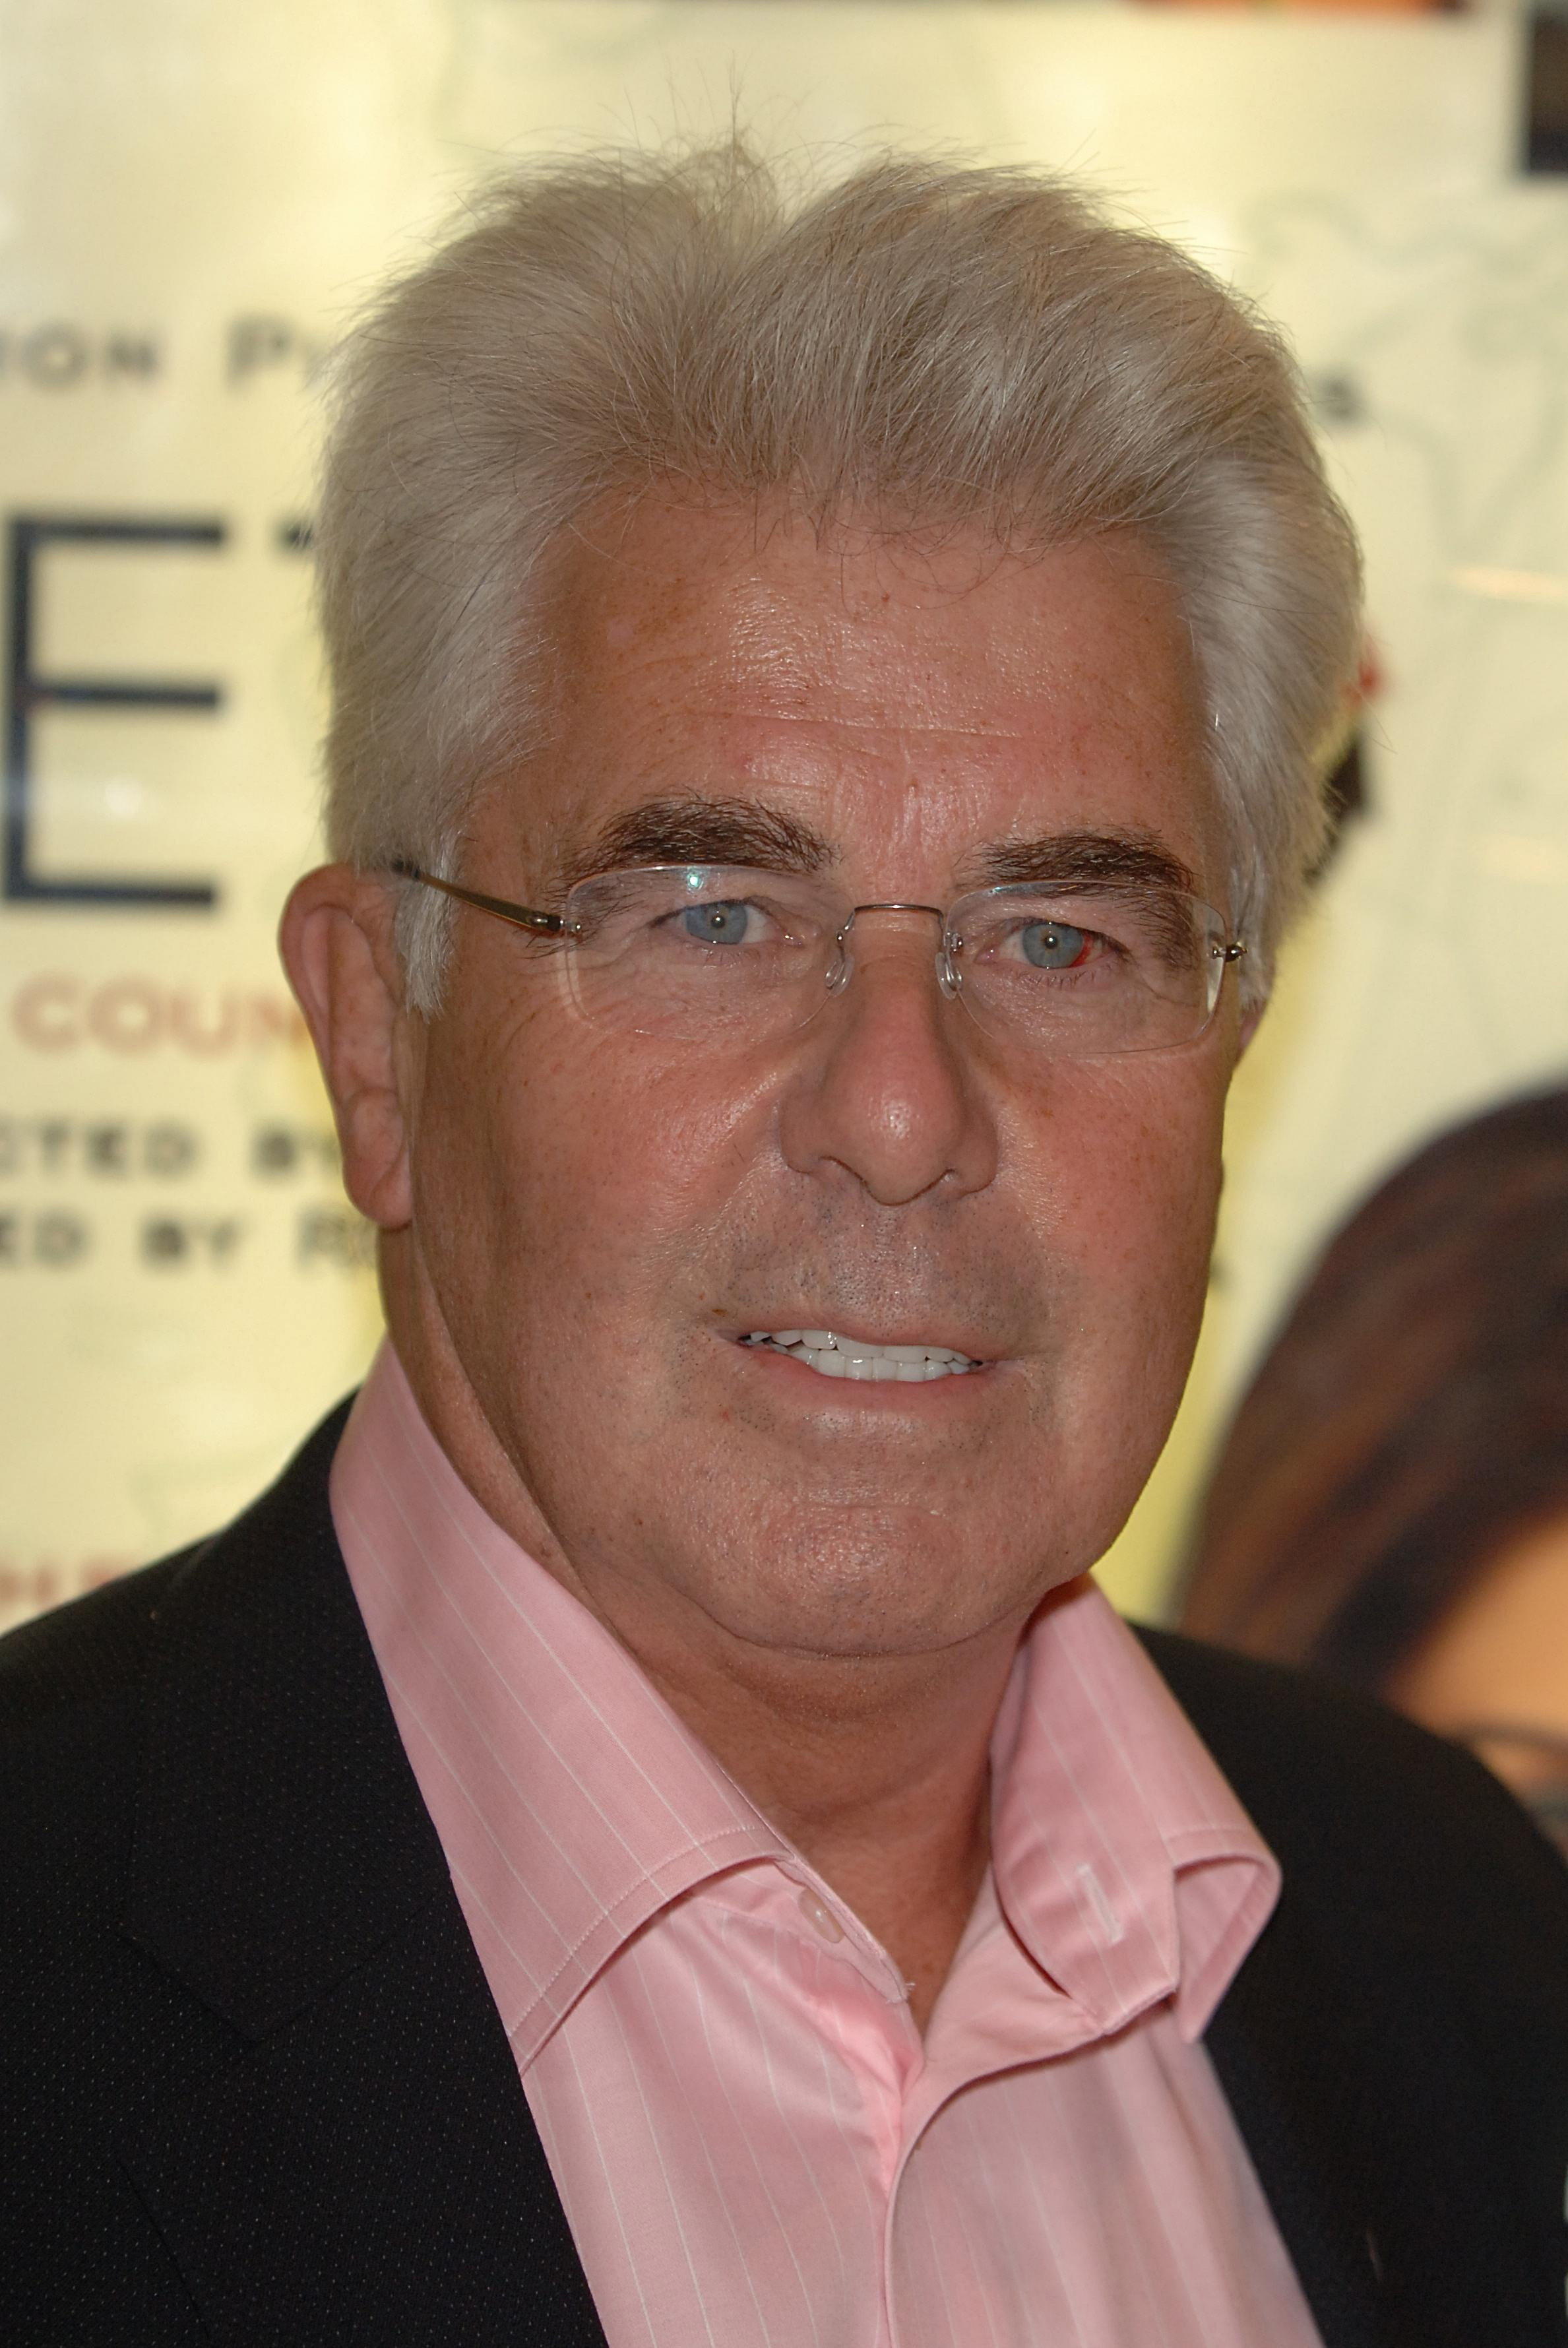 'Kerry is absolutely distraught' - Max Clifford